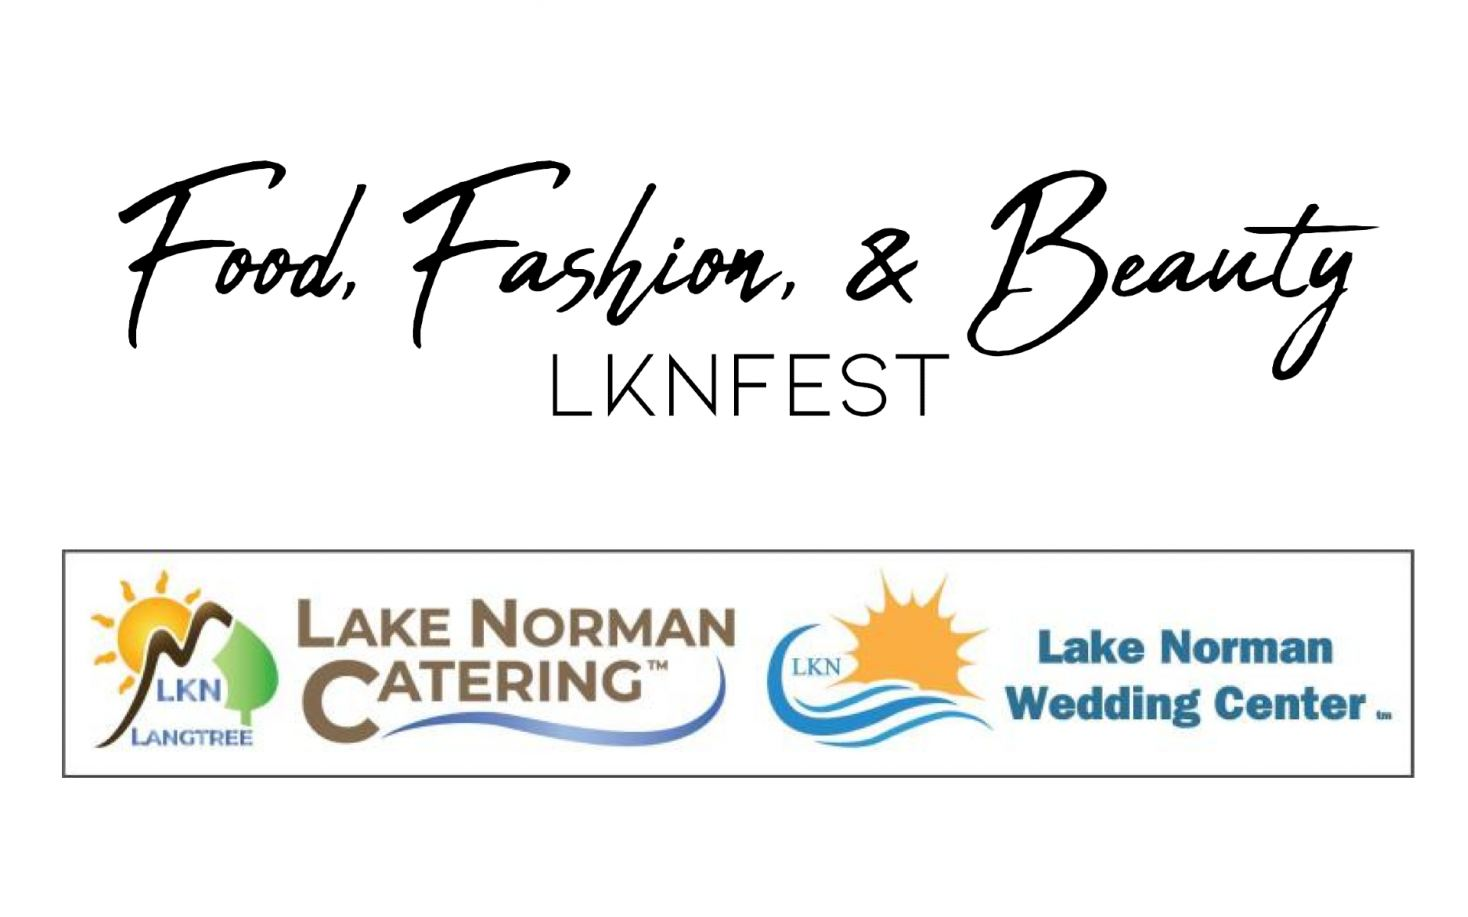 LKNFEST partners with Lake Norman Catering